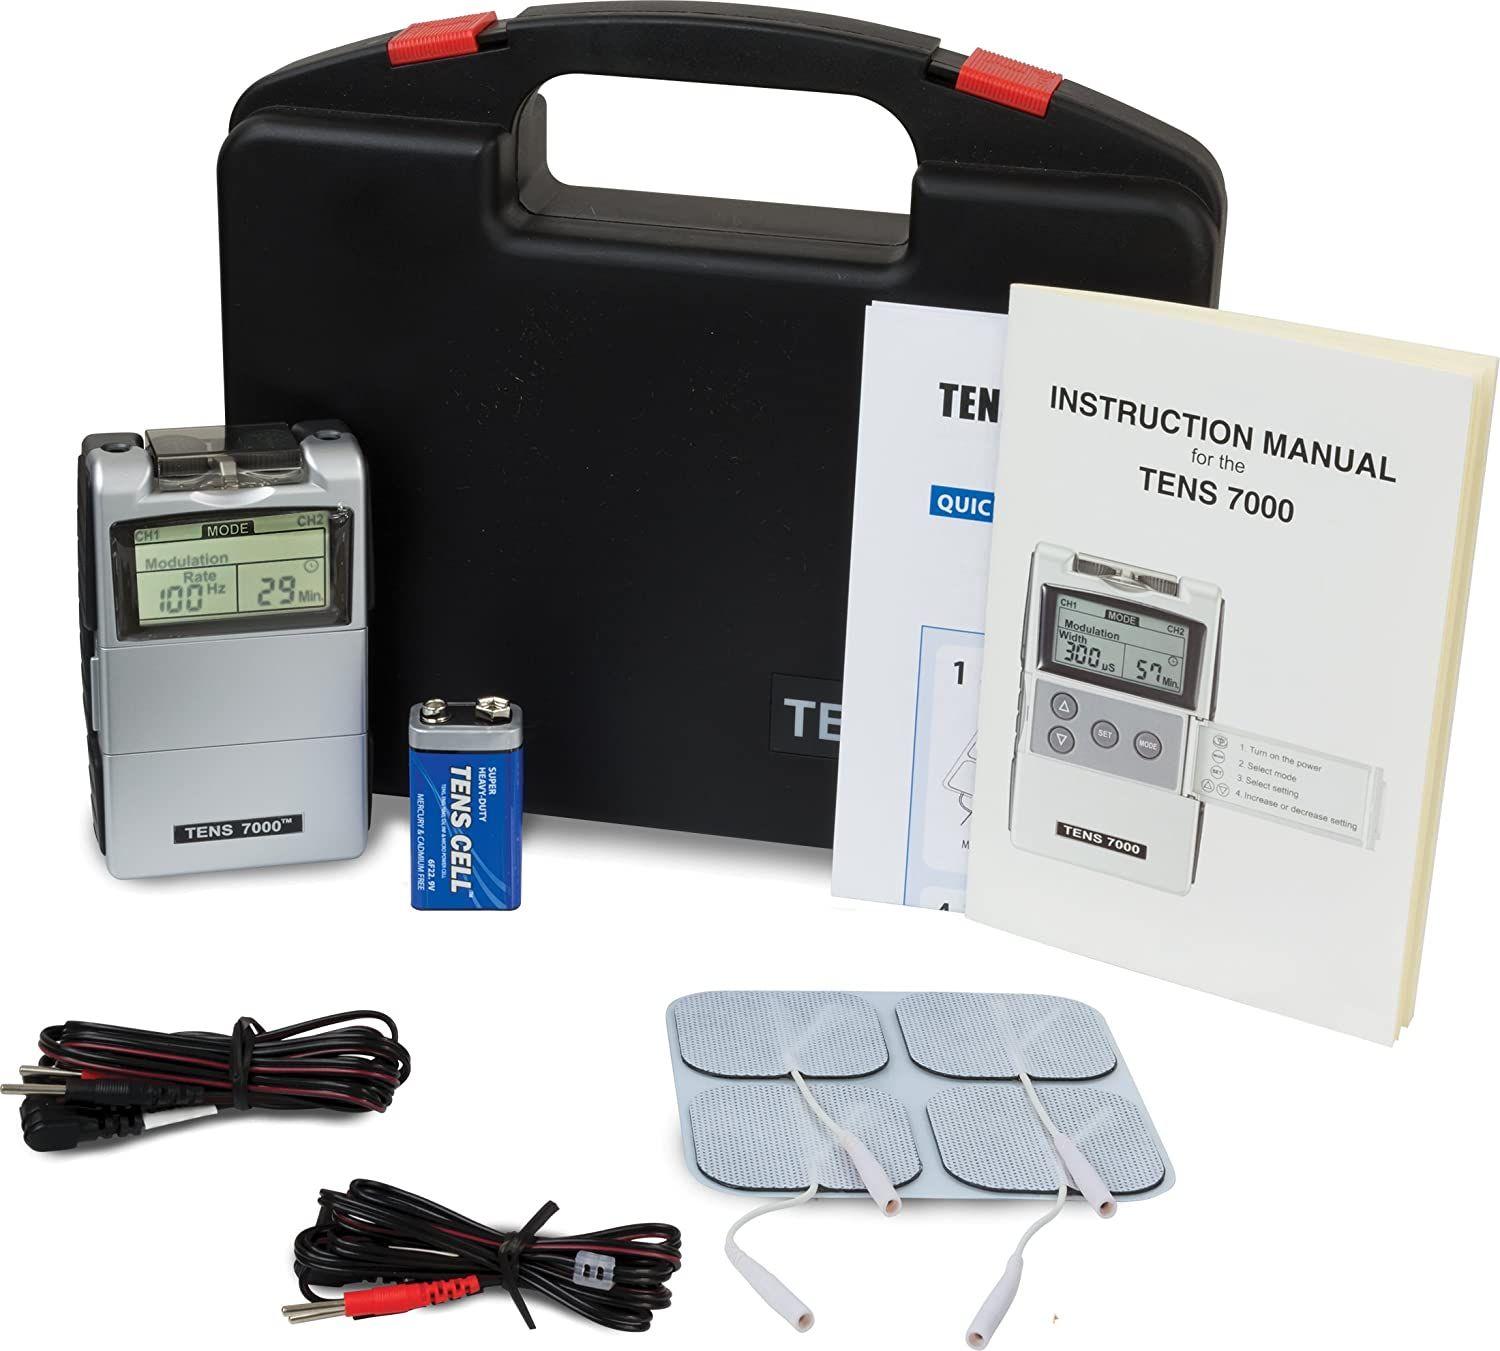 Tens 7000 2nd Edition Digital Unit With Accessories Industrial Wiring Books Pdf Scientific